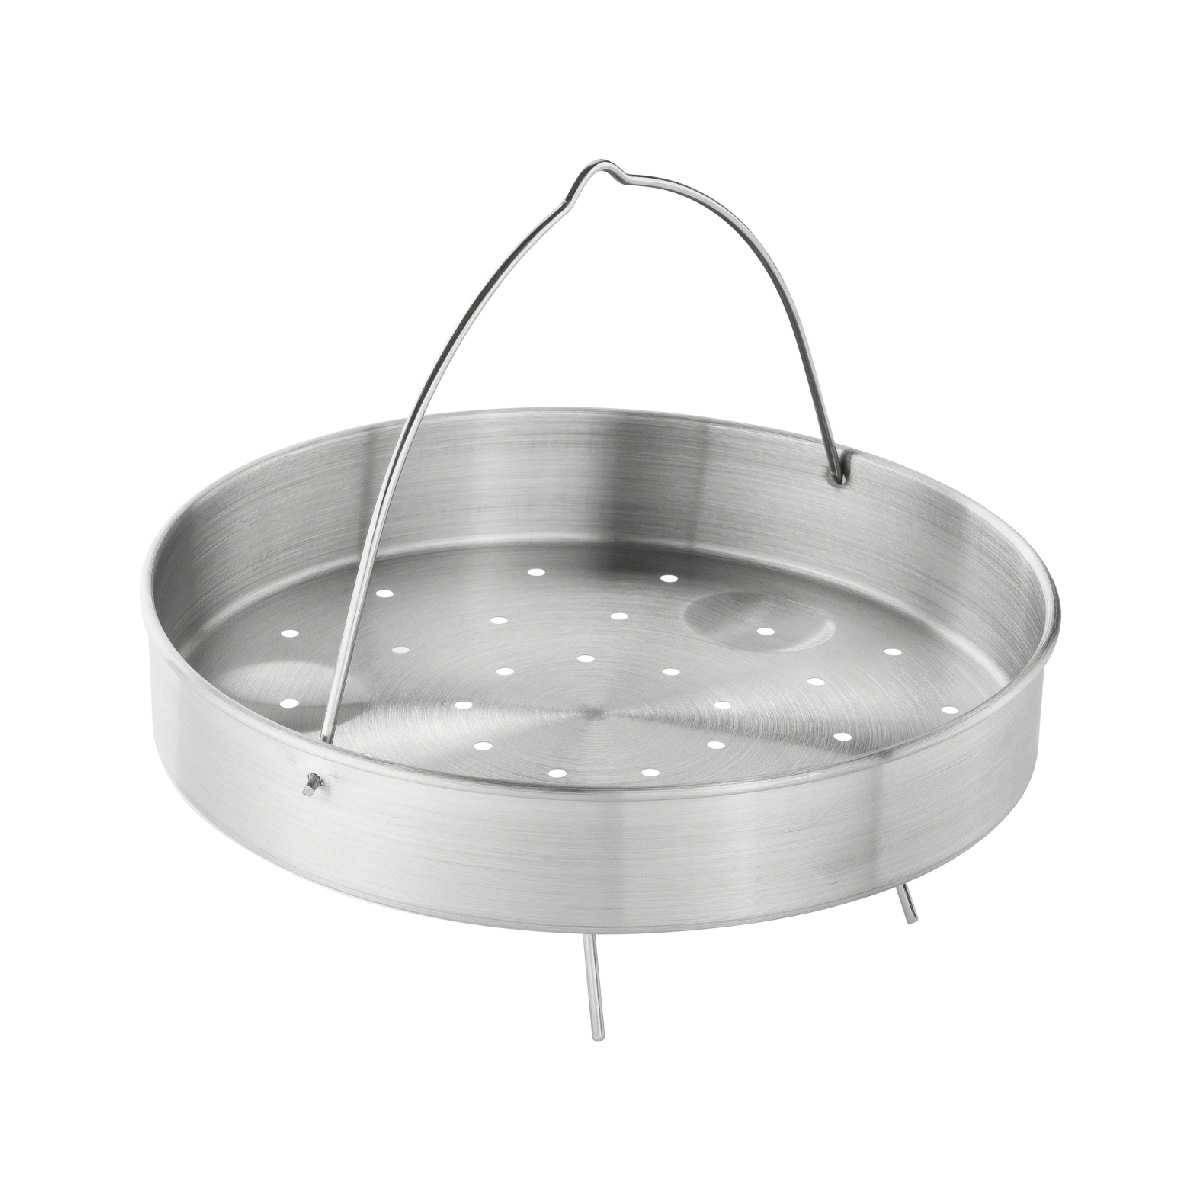 ZWILLING - Xửng hấp AirControl - 22cm